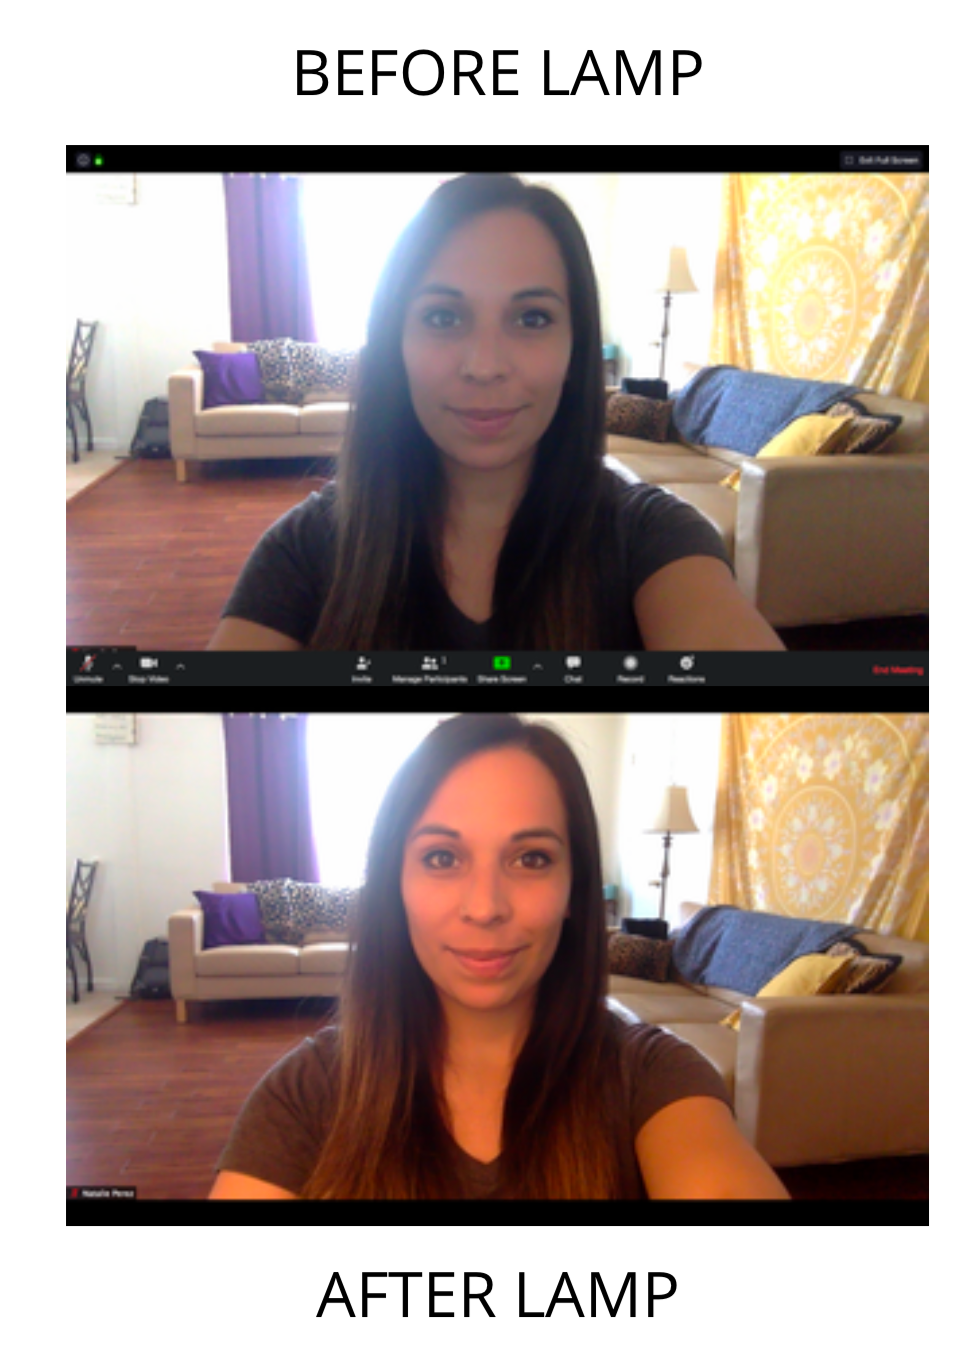 Before and after shot of Natalie's recorded image without a lamp and with a lamp.